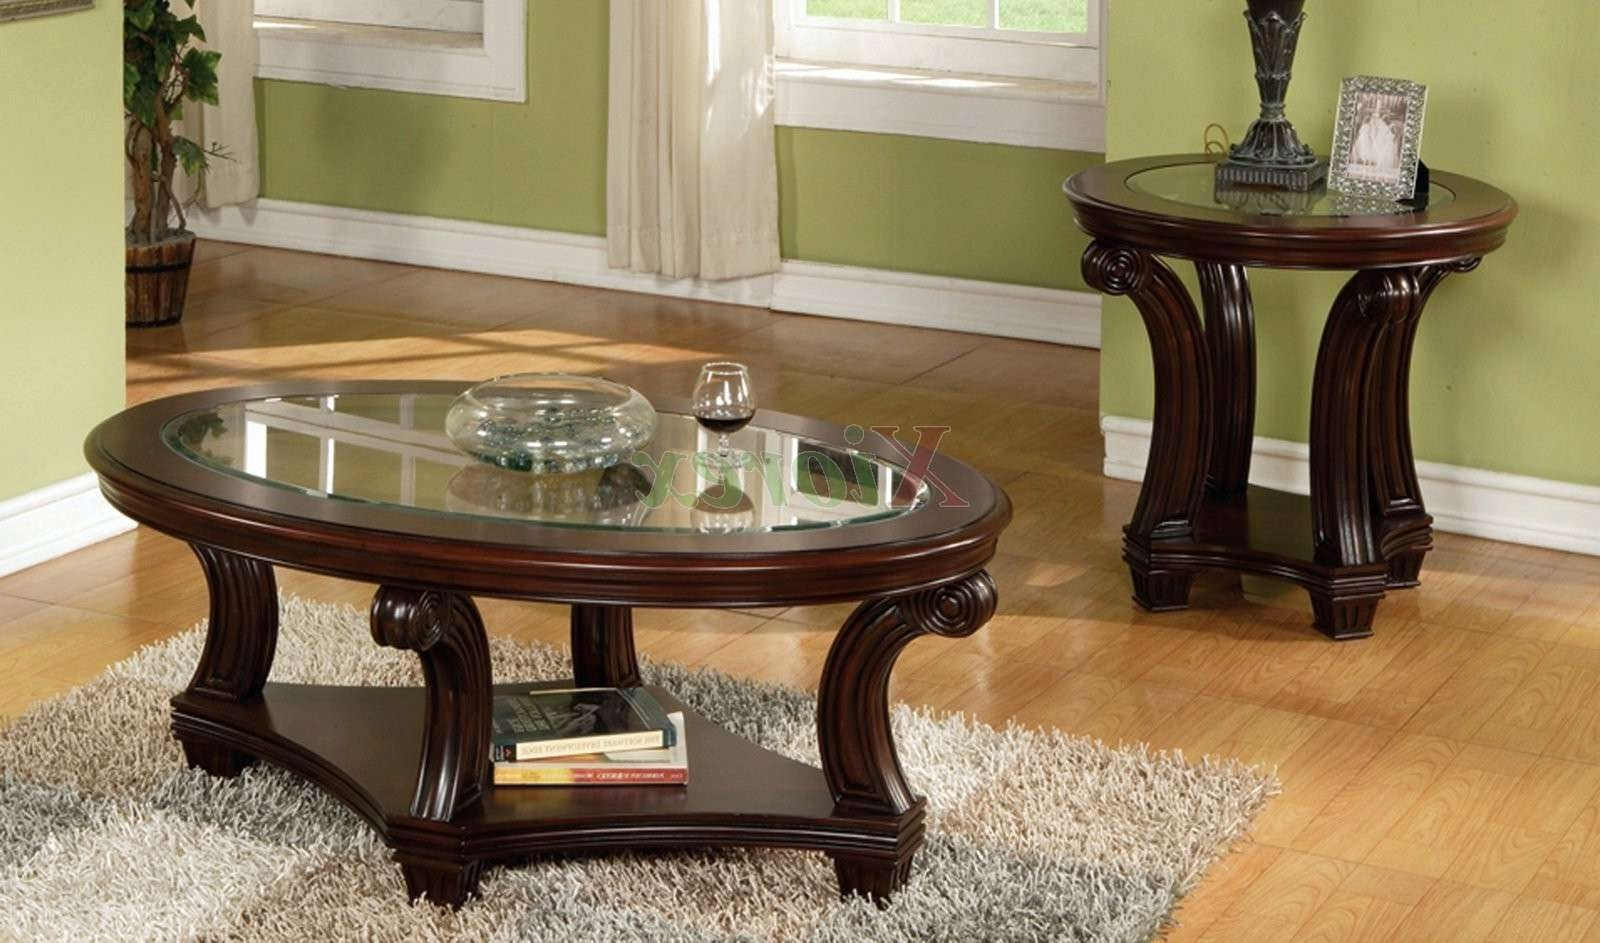 Fashionable Coffee Table With Matching End Tables Inside Glass Coffee Carafe Wood And Glass Coffee Table Sets Formal Dining (View 3 of 20)